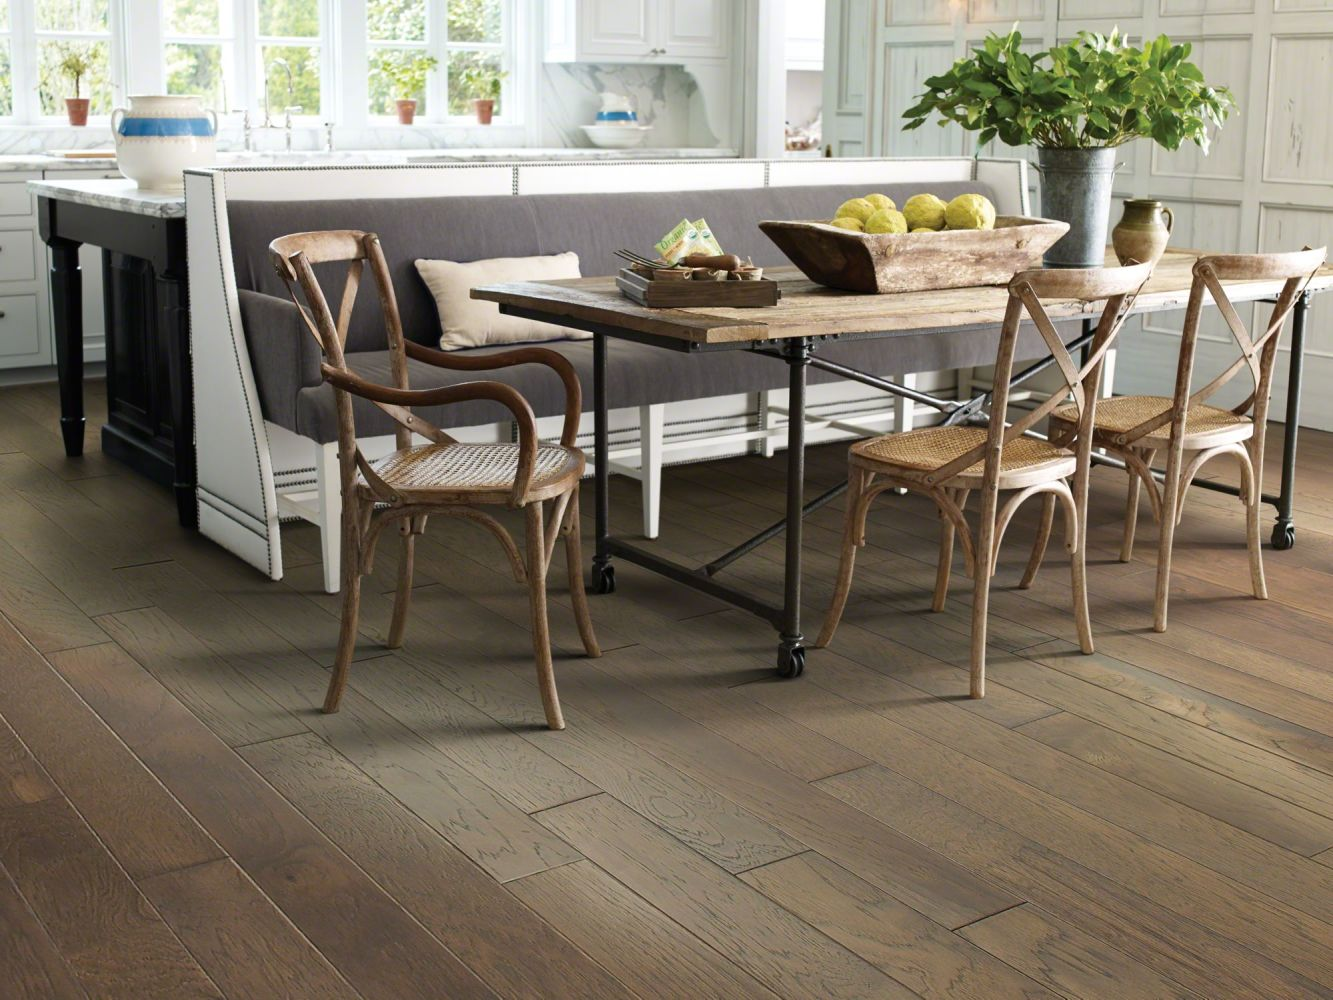 Shaw Floors Home Fn Gold Hardwood Kings Canyon 2 – 5 Peppercorn 05003_HW622